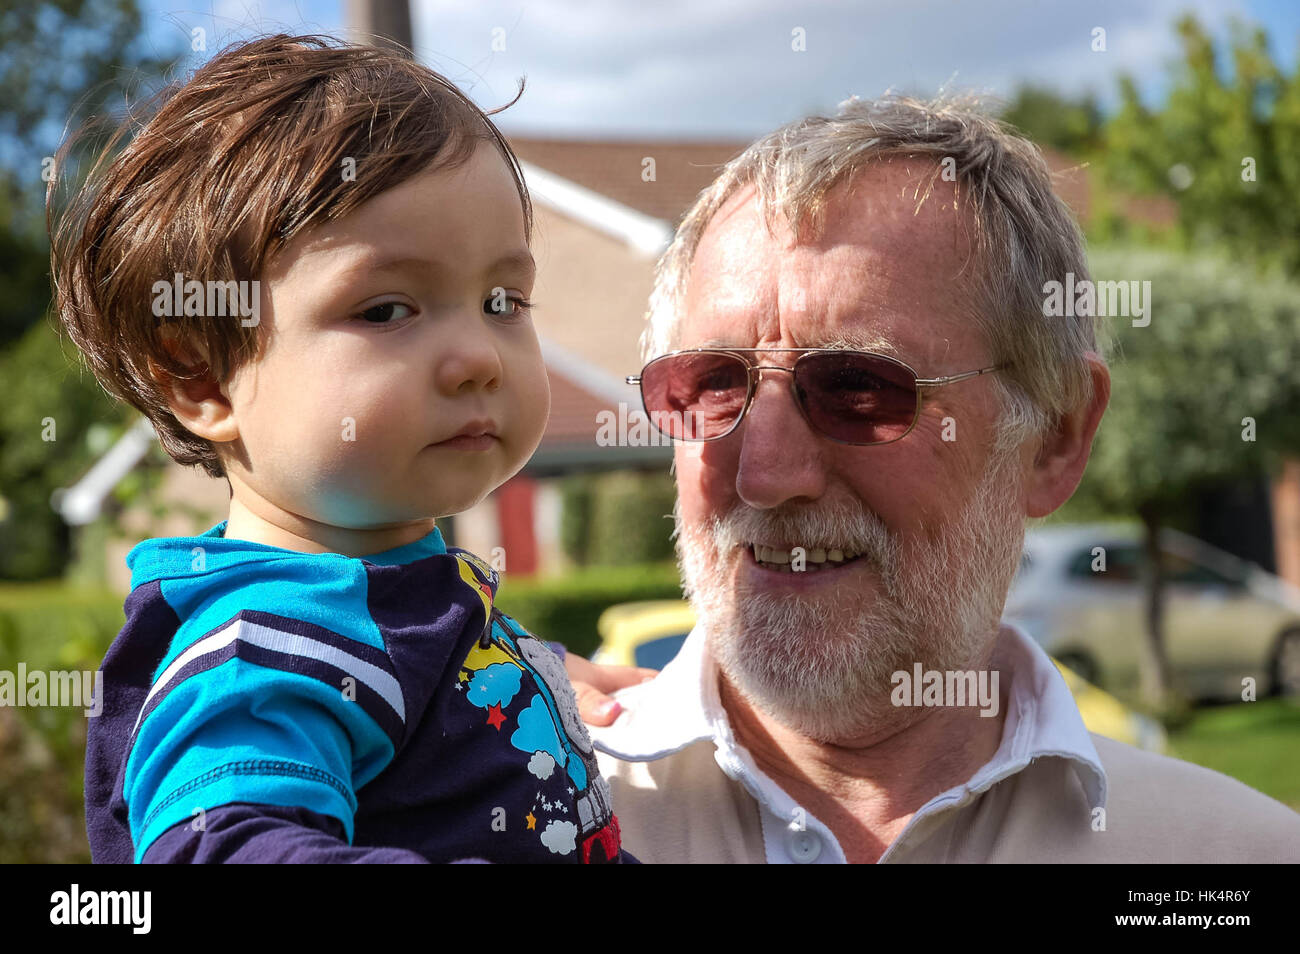 a-smiling-grandfather-holds-his-young-grandson-HK4R6Y.jpg